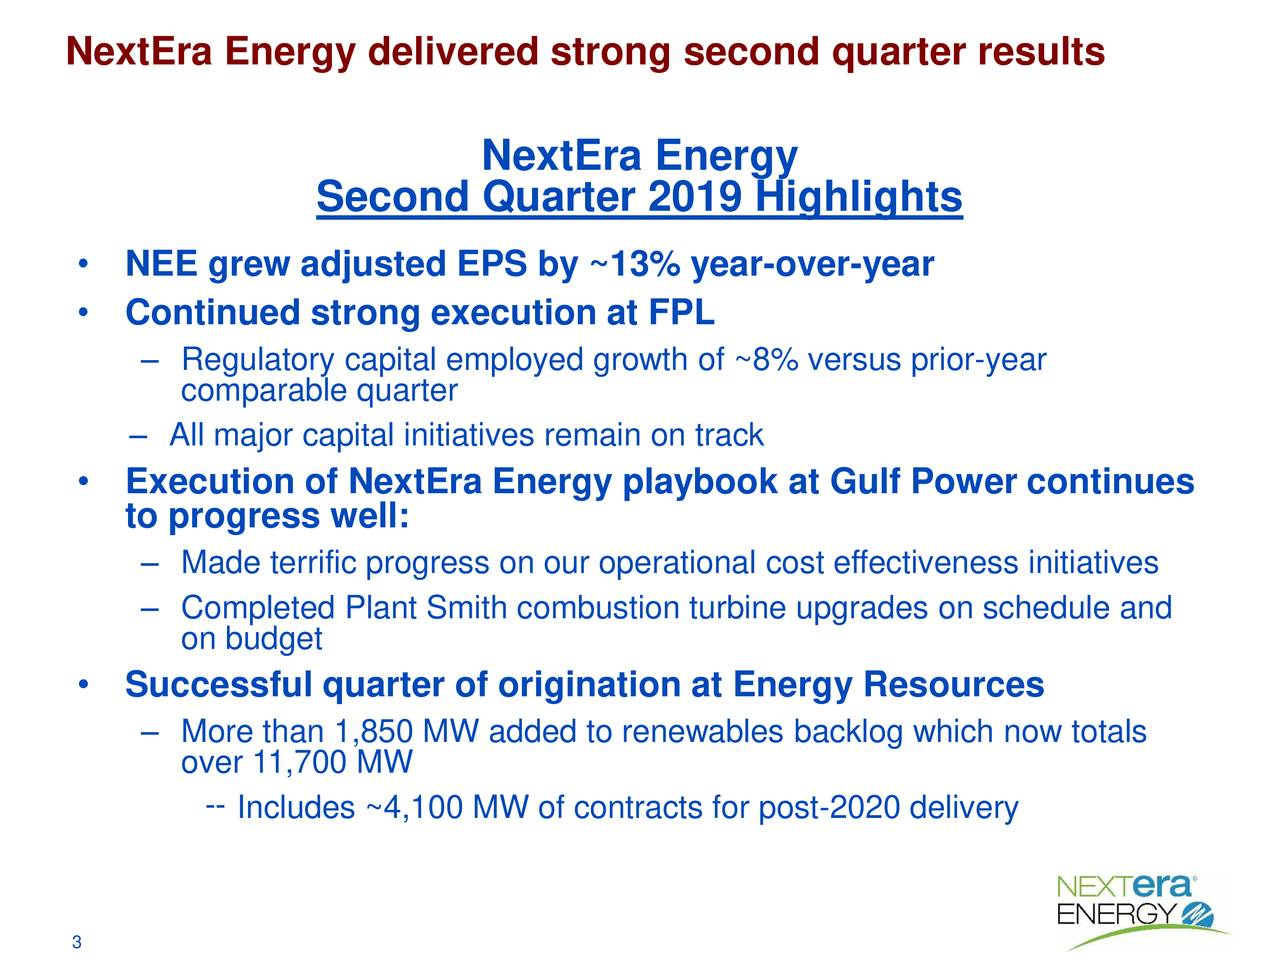 NextEra Energy: Buy For Renewable Energy Growth In The Electric Utility Business